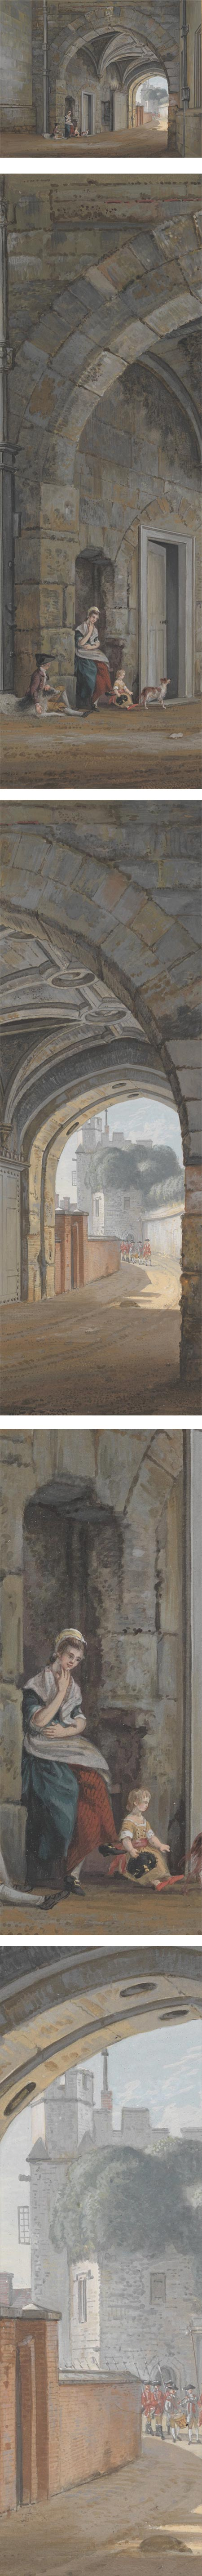 Queen Elizabeth Gate, Paul Sandby, gouache on paper